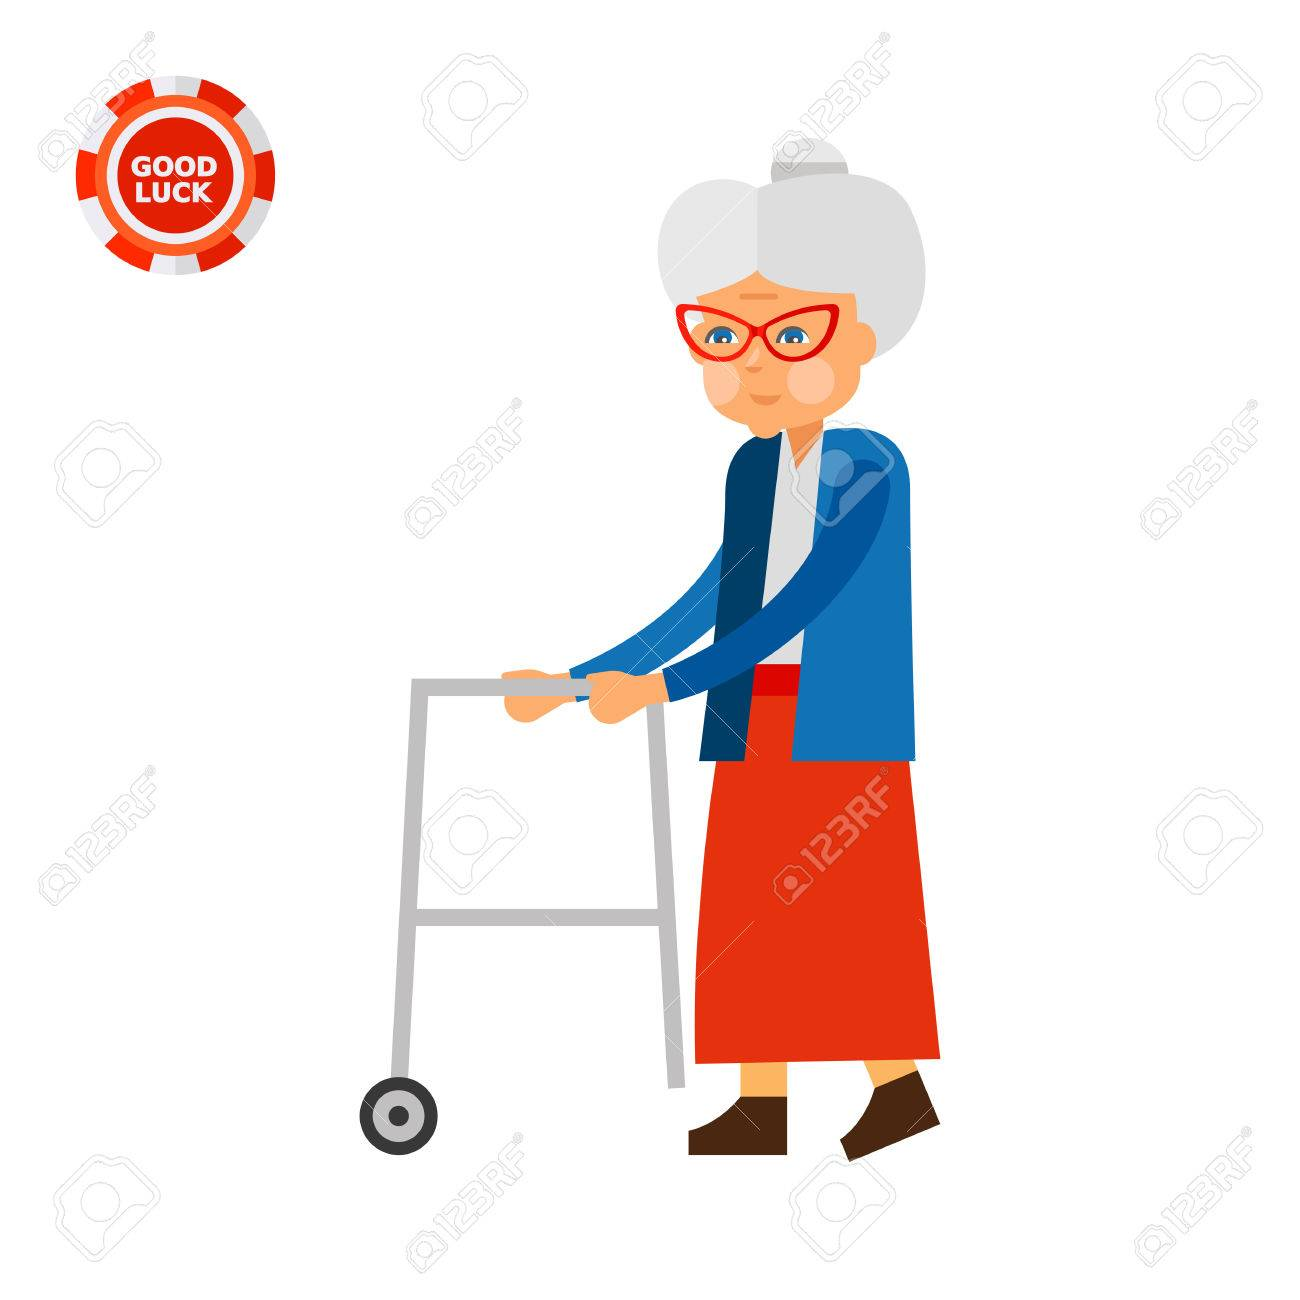 1300x1300 Elderly Woman With Rolling Walkers. Aging, Old Person, Age. Aging